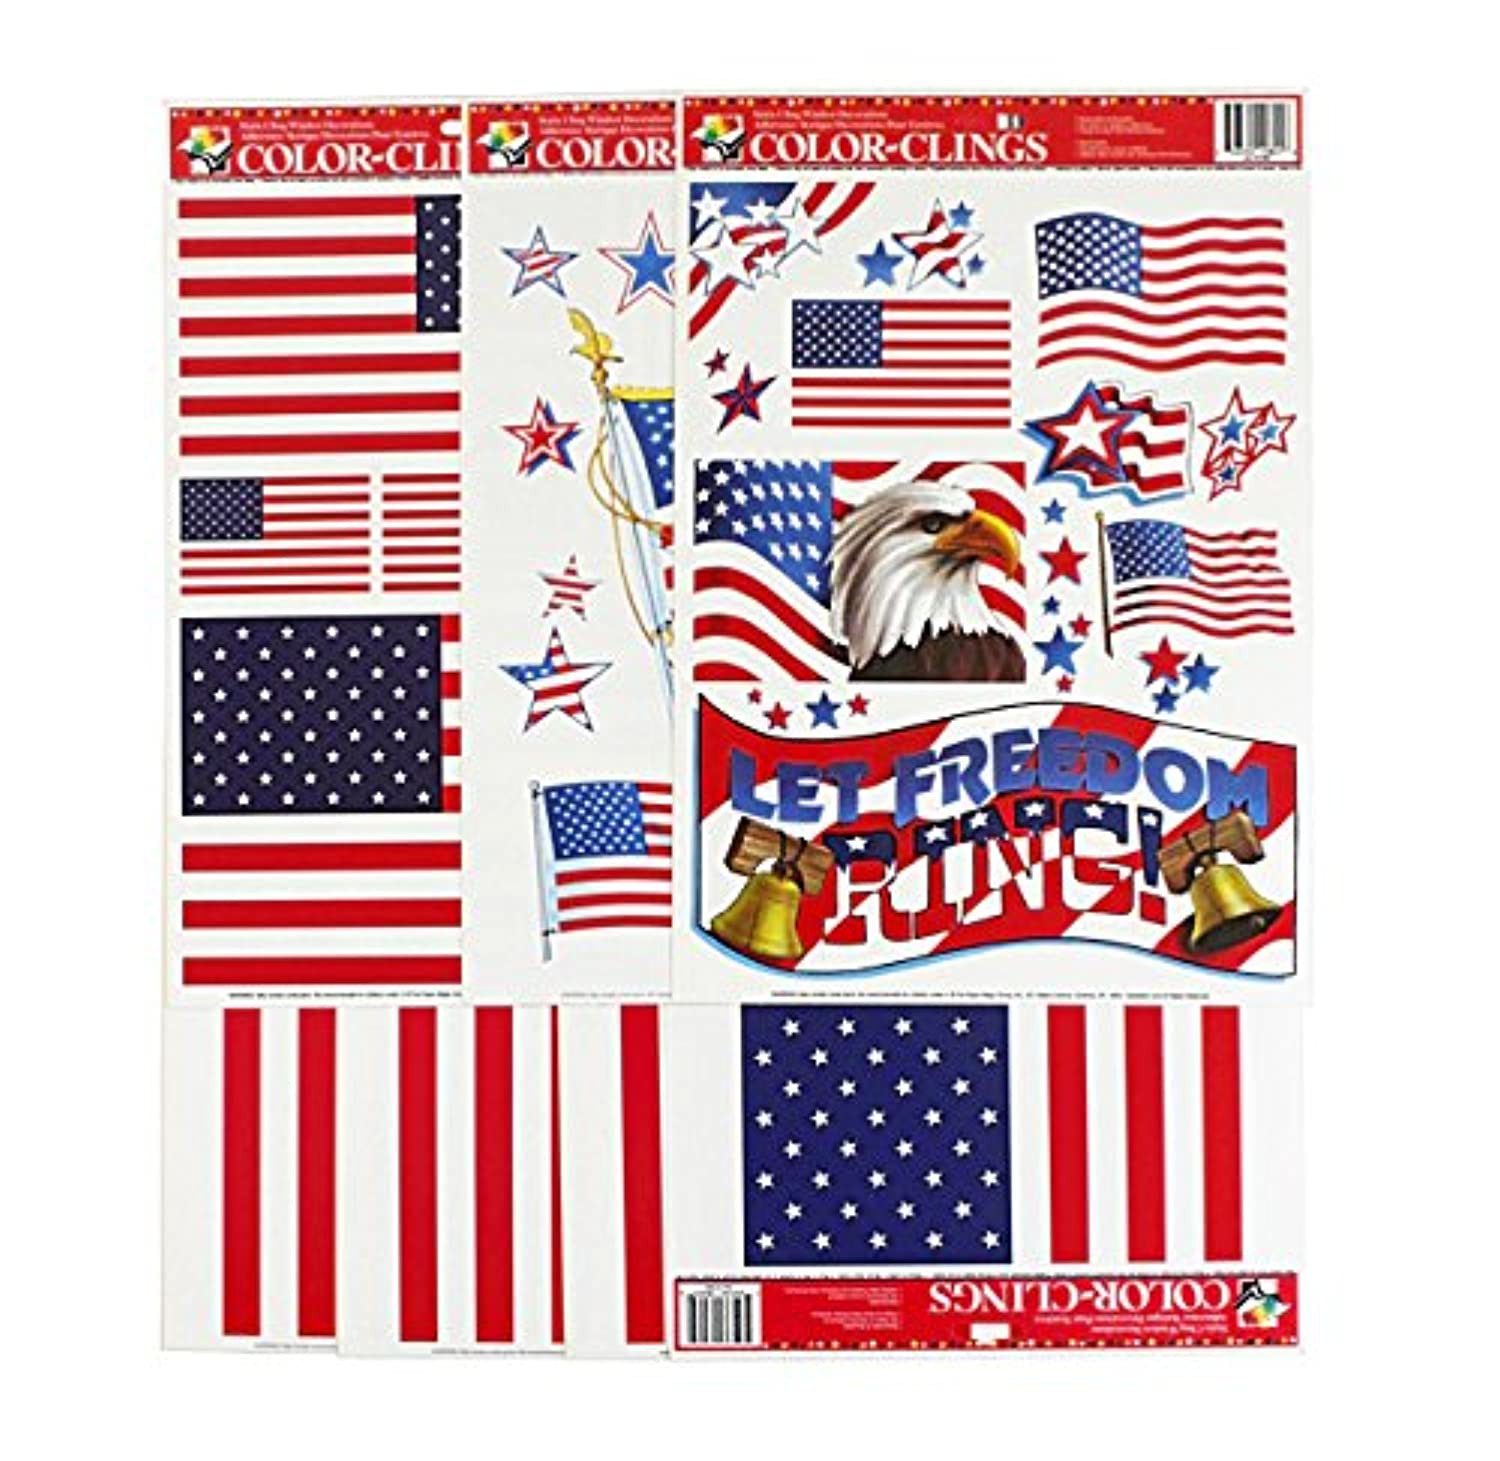 [ペーパーマジック]Paper Magic 7Sheets Window Clings American Flags 10807P [並行輸入品]